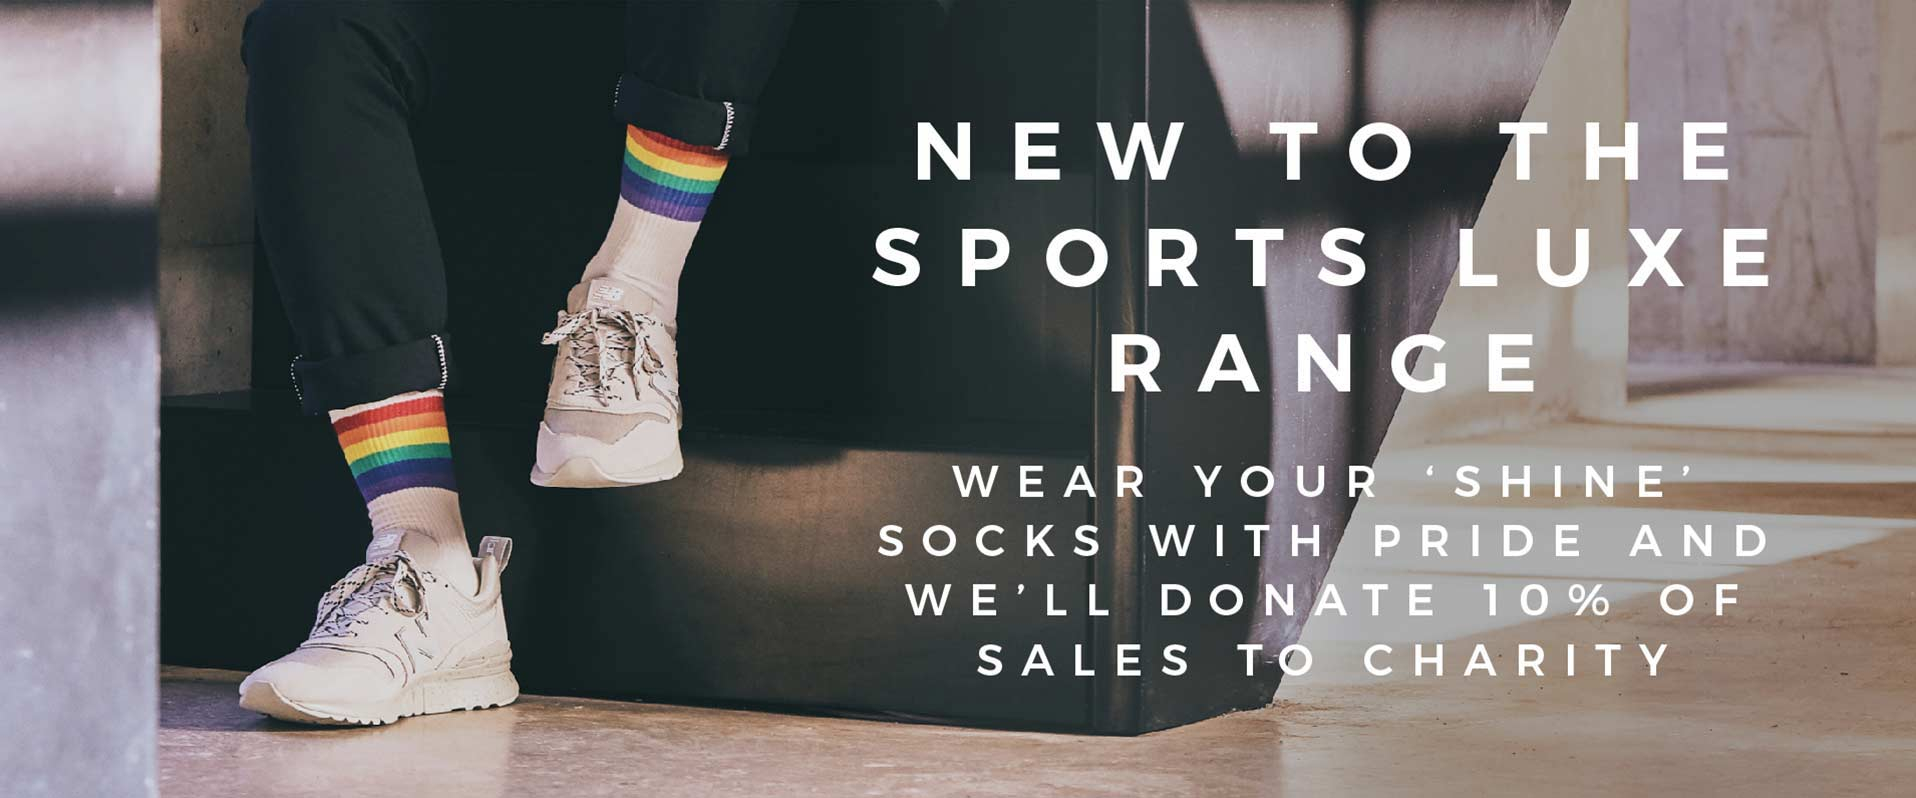 New Sports Luxe Shine Socks 10% of sales goes to charity